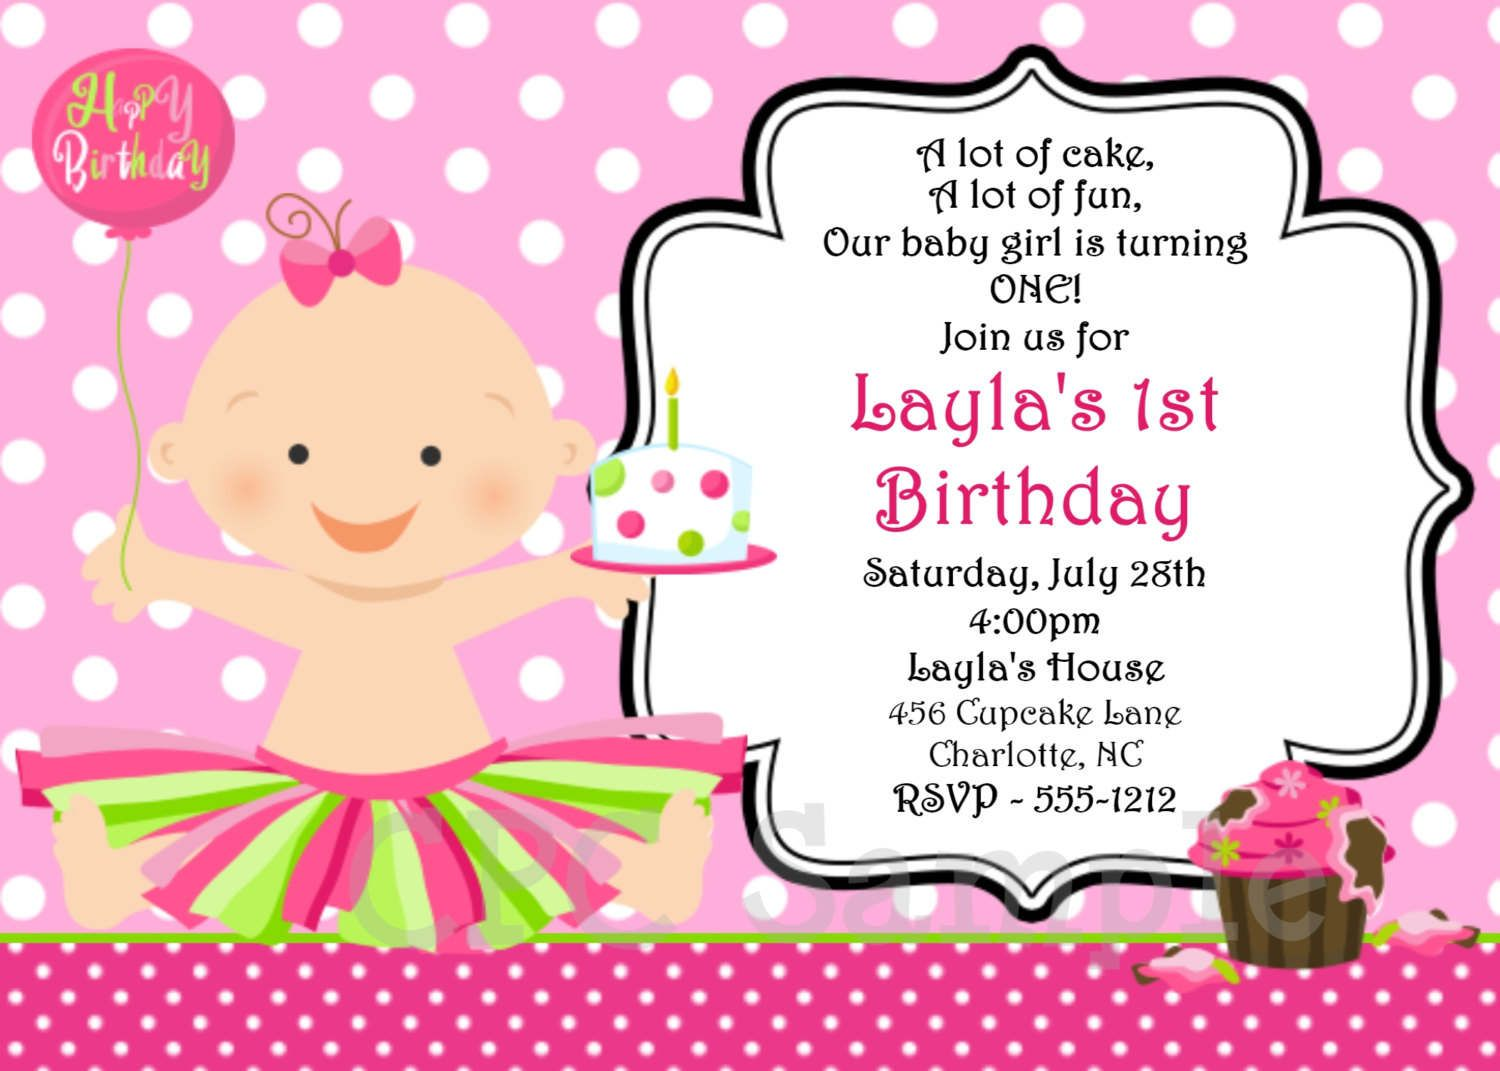 Birthday Invites Free Birthday Invitation Maker Images Downloads – Birthday Invitation Maker